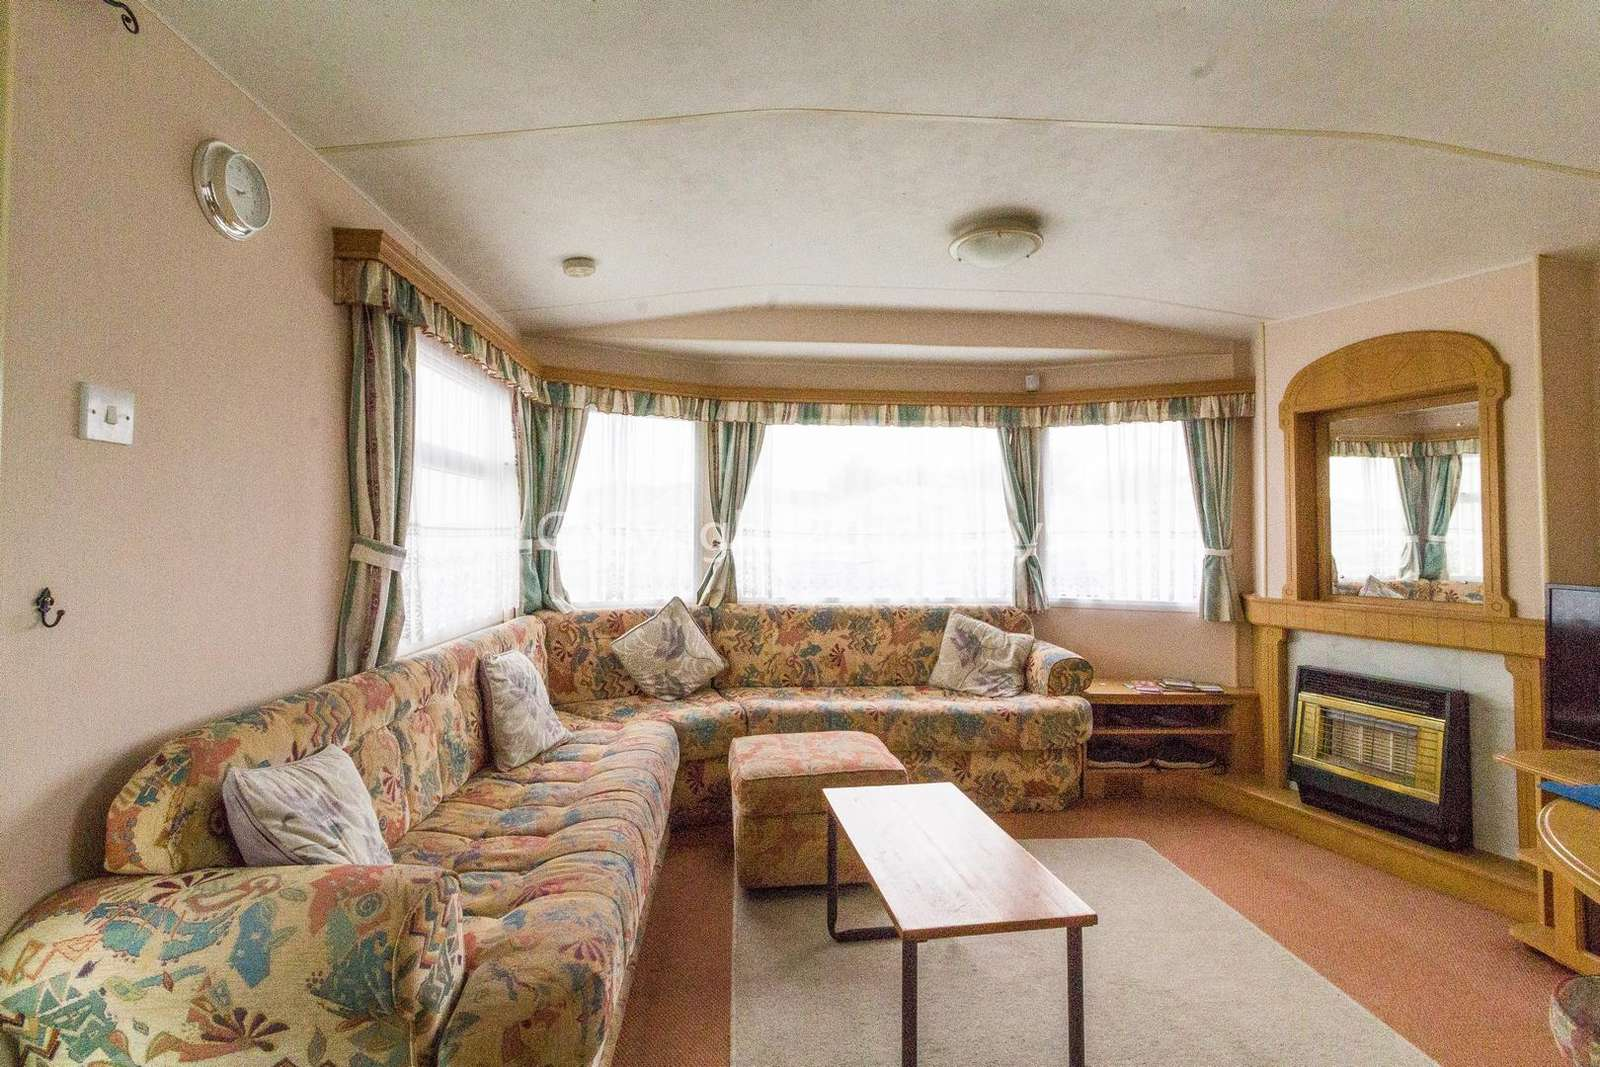 Spacious living area with a TV and gas fire